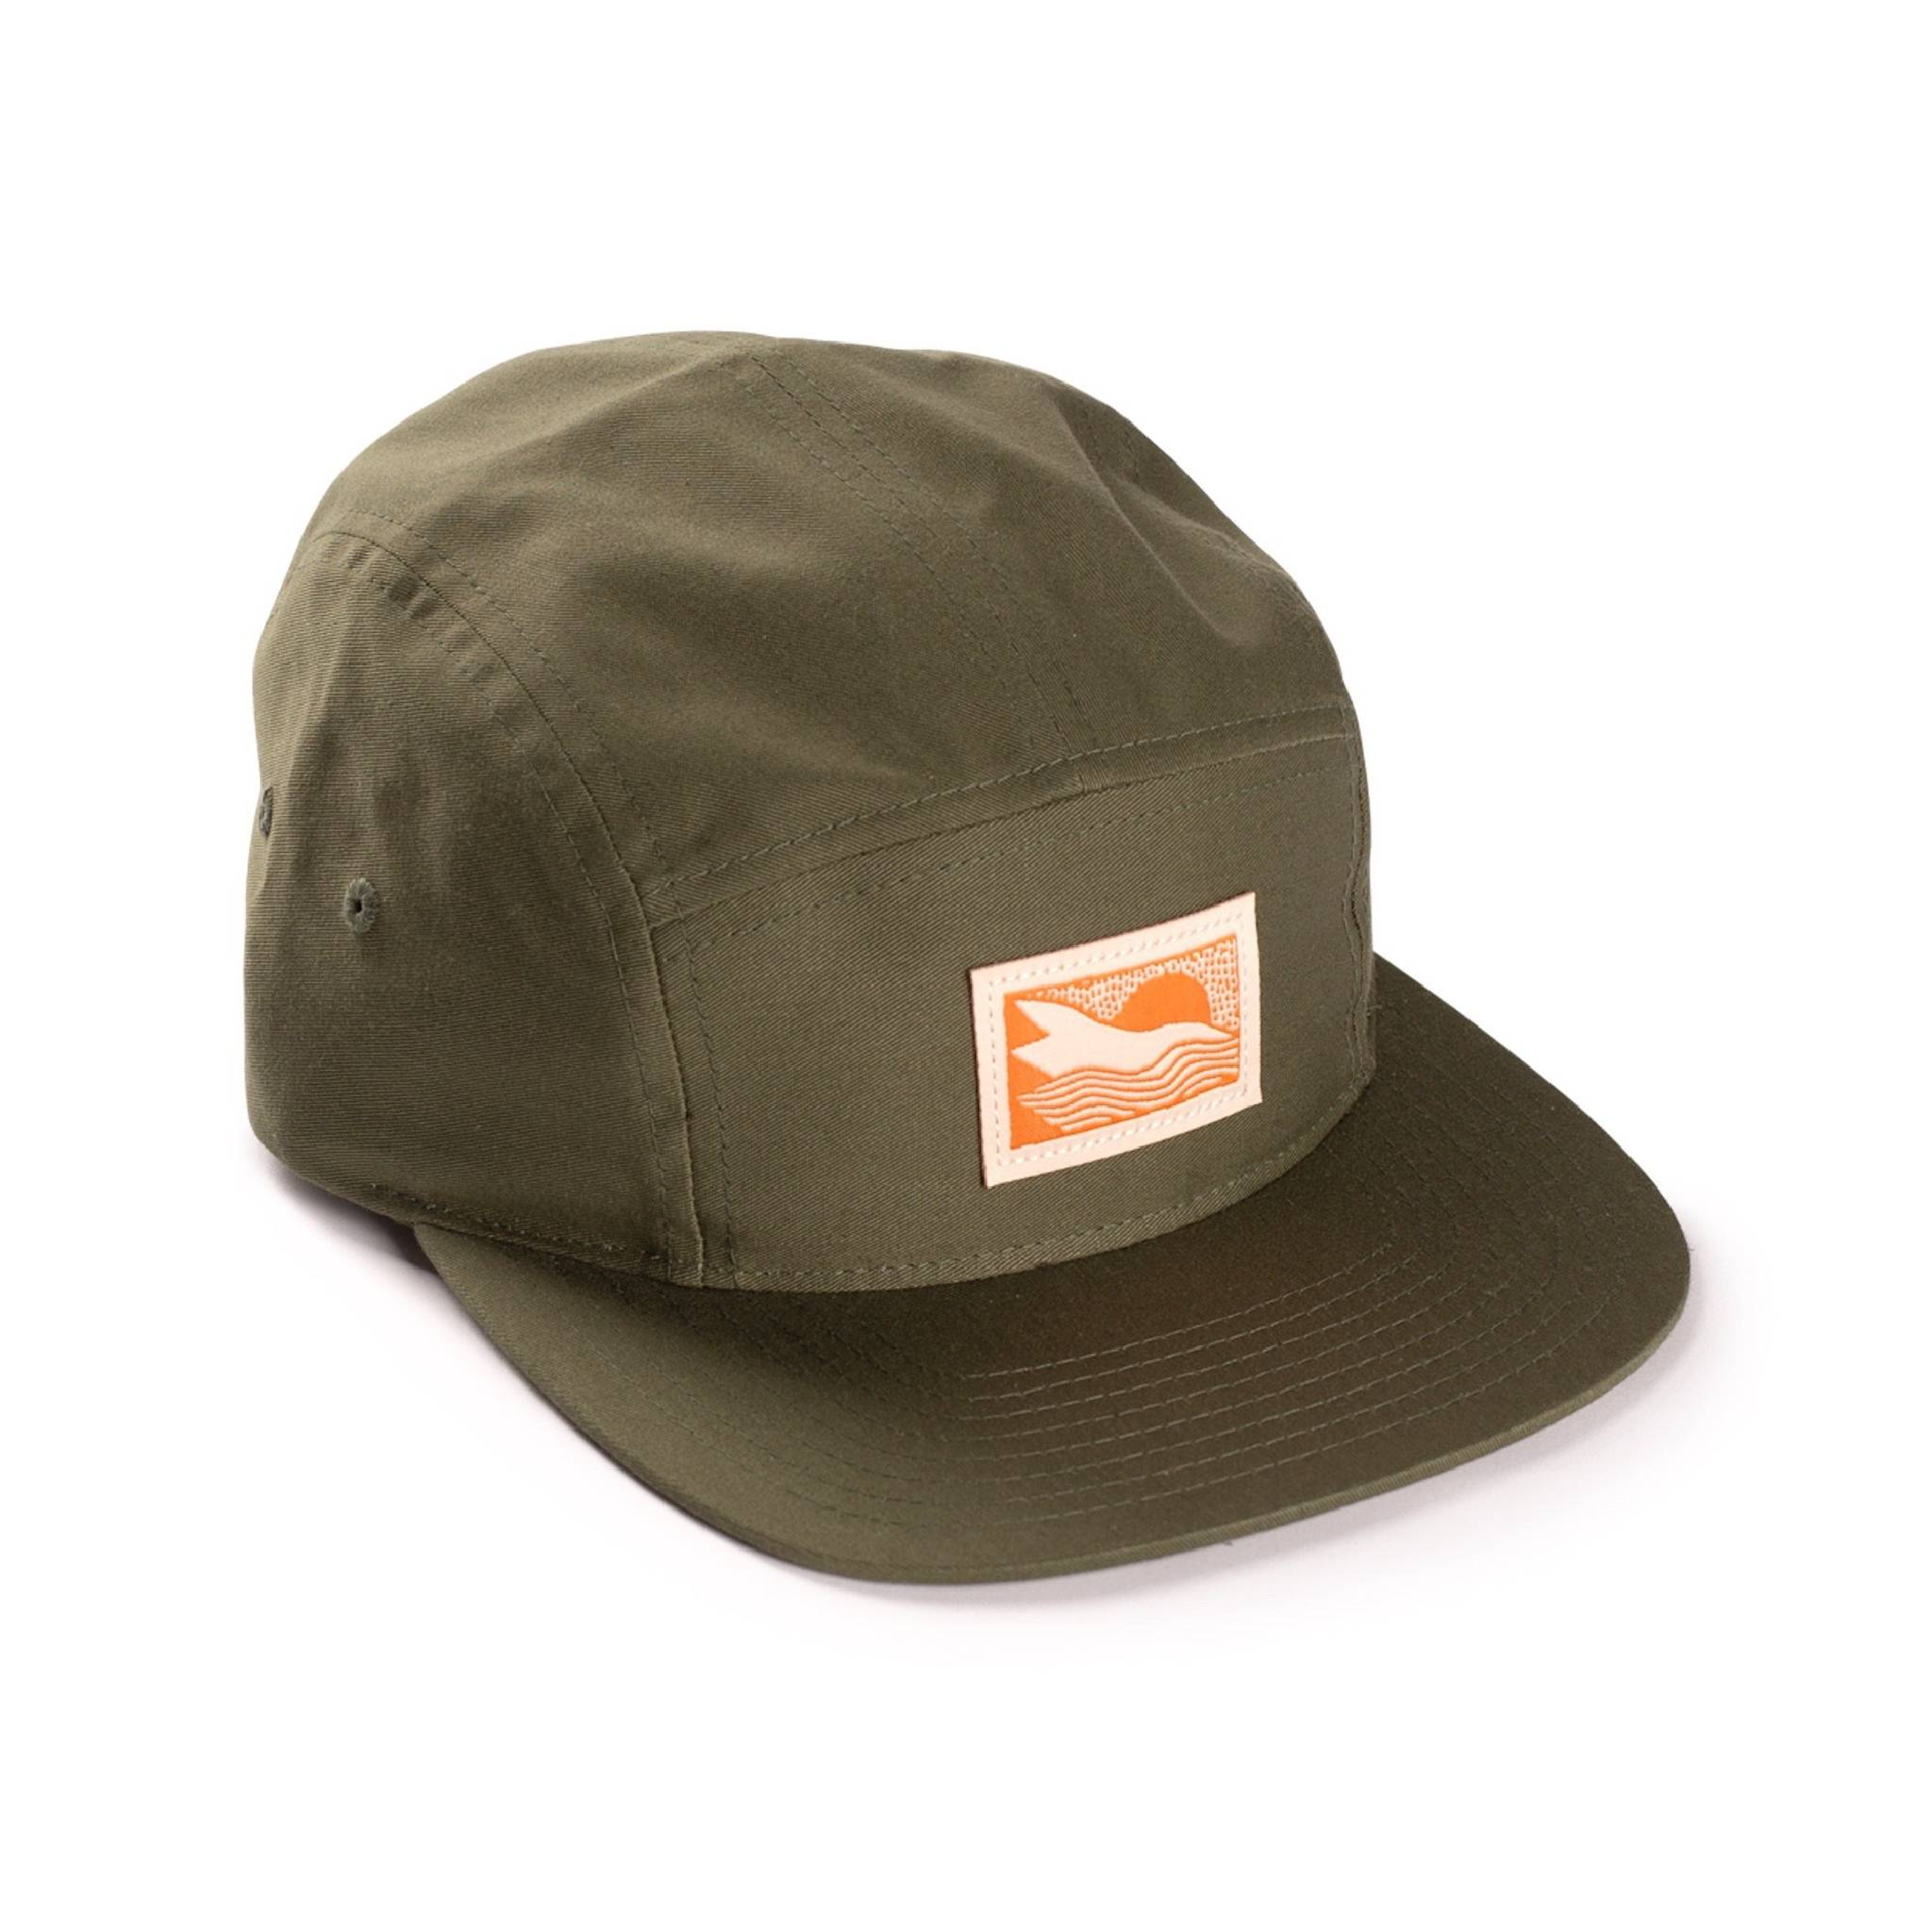 Abstract Landscape 5-panel hat